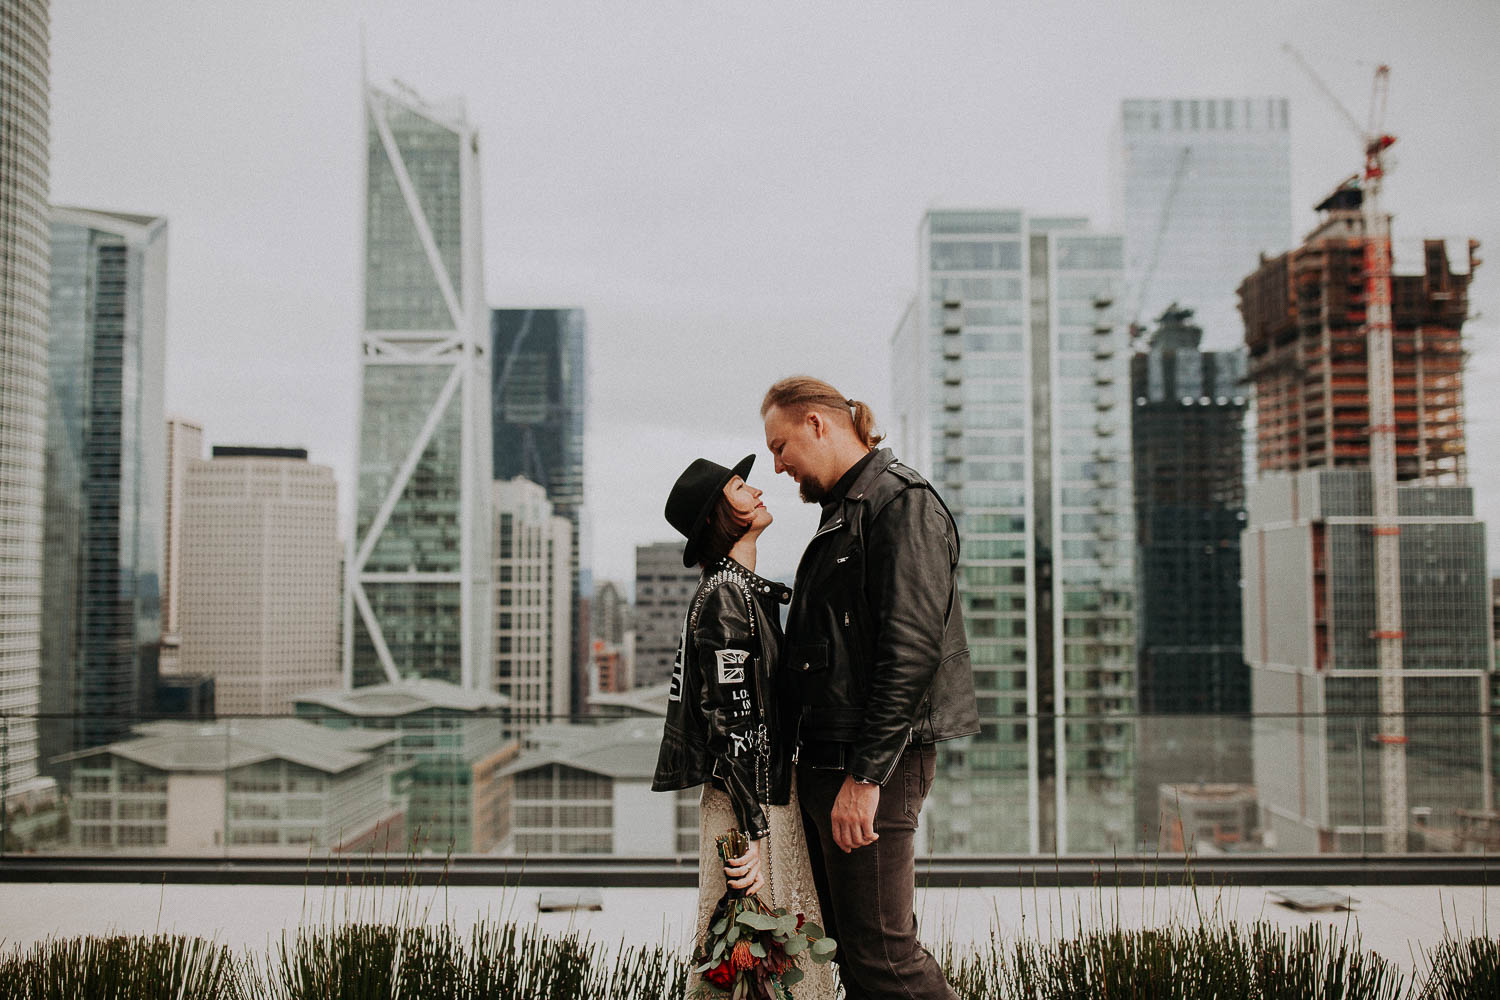 Elopement ceremony in LinkedIn San Francisco office. Rock'n'Roll elopement in San Francisco Downtown. Hard Rock bikers wedding. Leather jackets and biker boots.